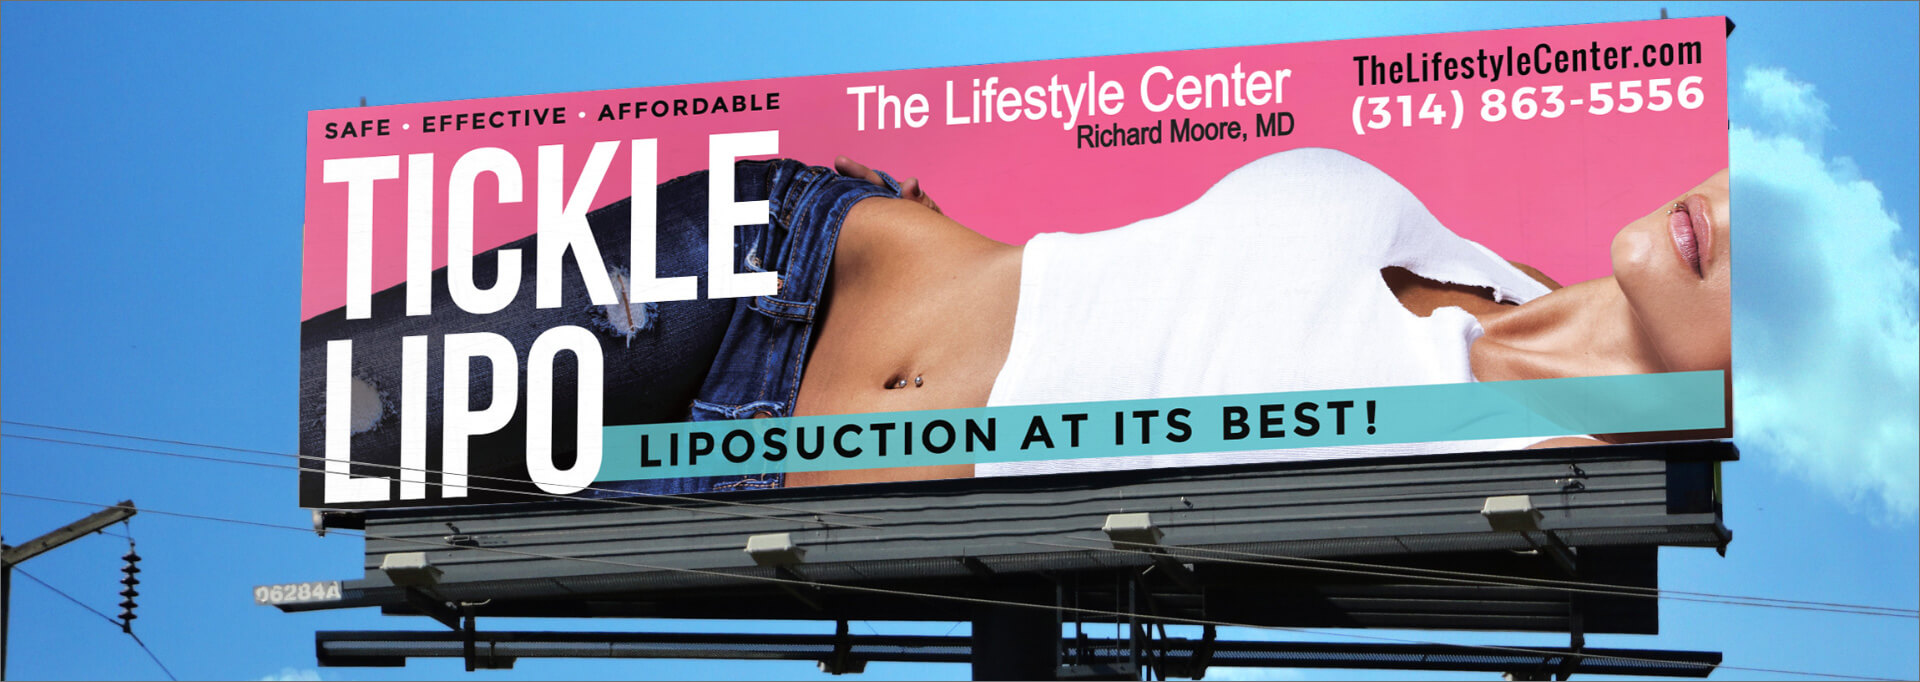 The Lifestyle Center tickle lipo billboard